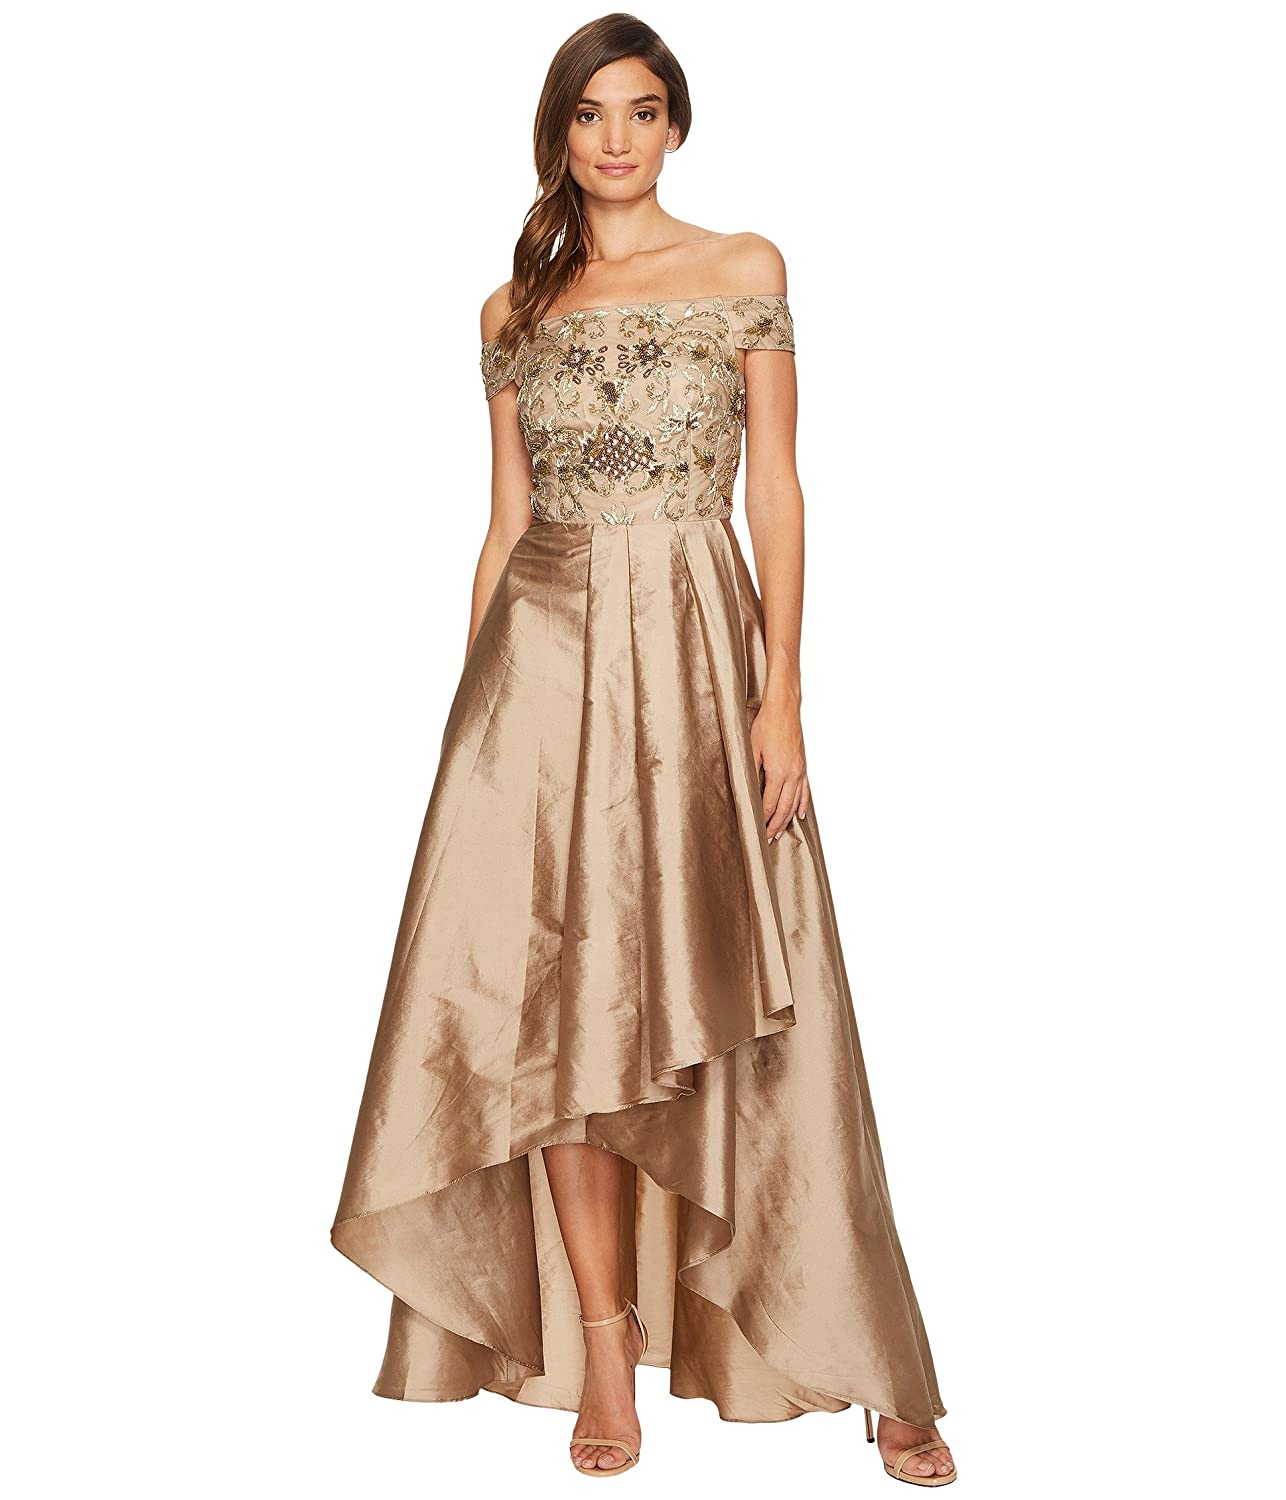 [アドリアナパペル] Adrianna Papell レディース Beaded Off the Shoulder Gown with High-Low Taffetta Skirt ドレス [並行輸入品] B075JJ298L 6|Antique Bronze Antique Bronze 6